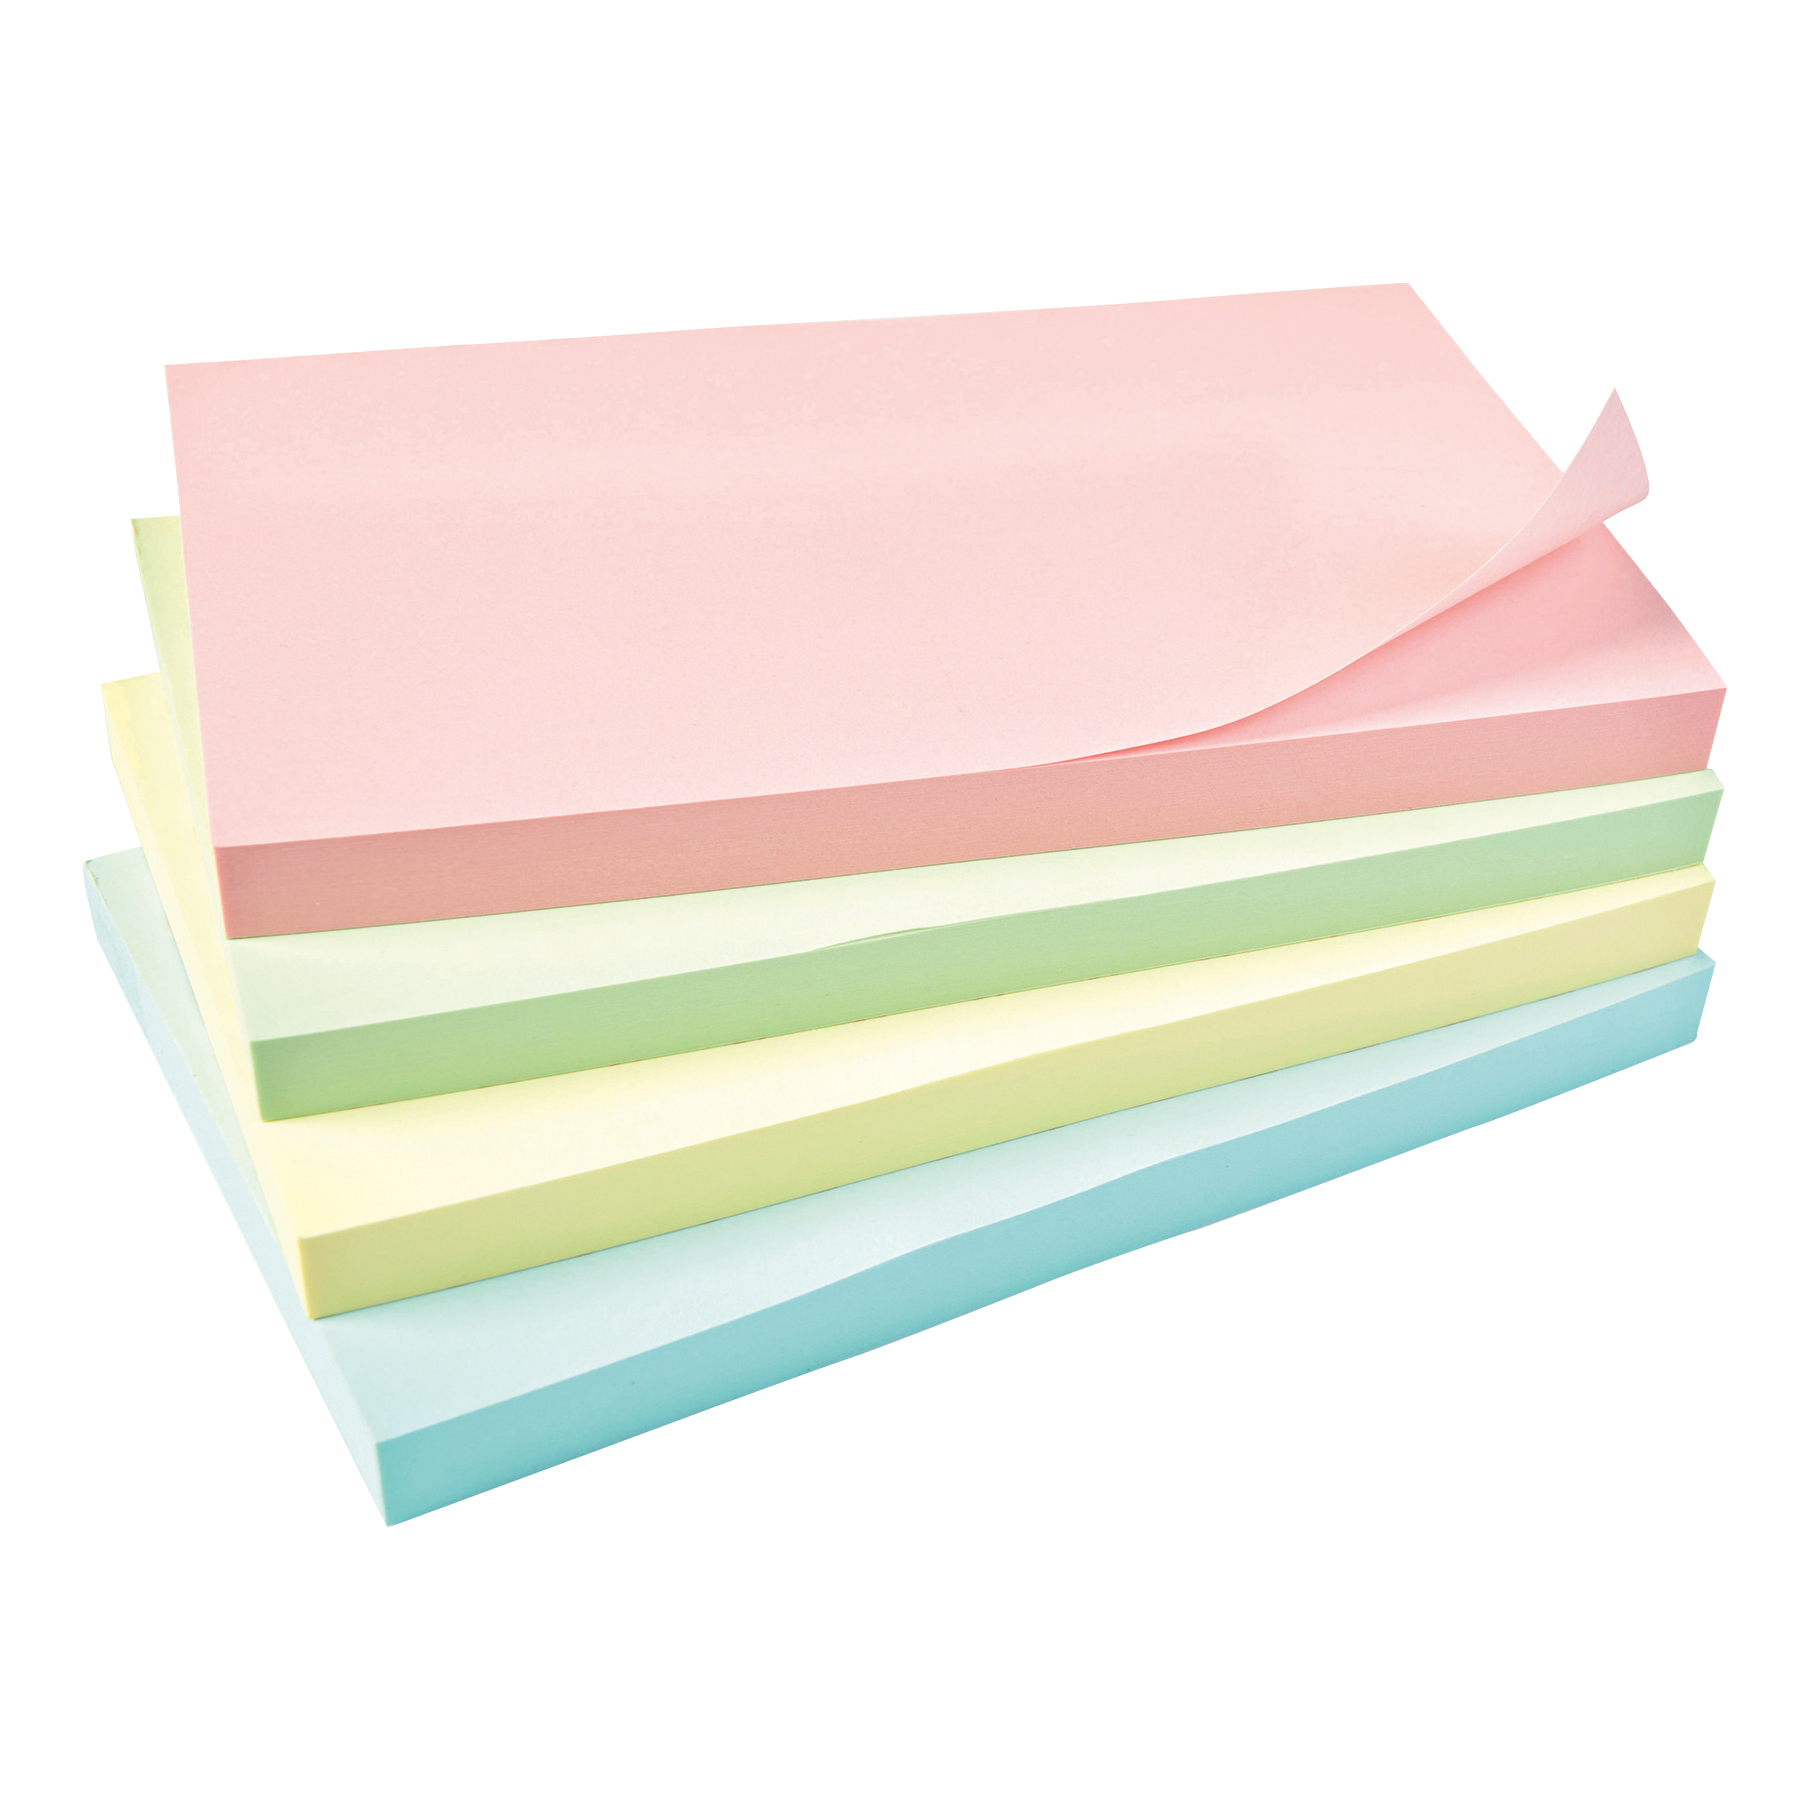 5 Star Office Re-Move Notes Repositionable Pastel Pad of 100 Sheets 76x127mm Assorted Code Pack 12